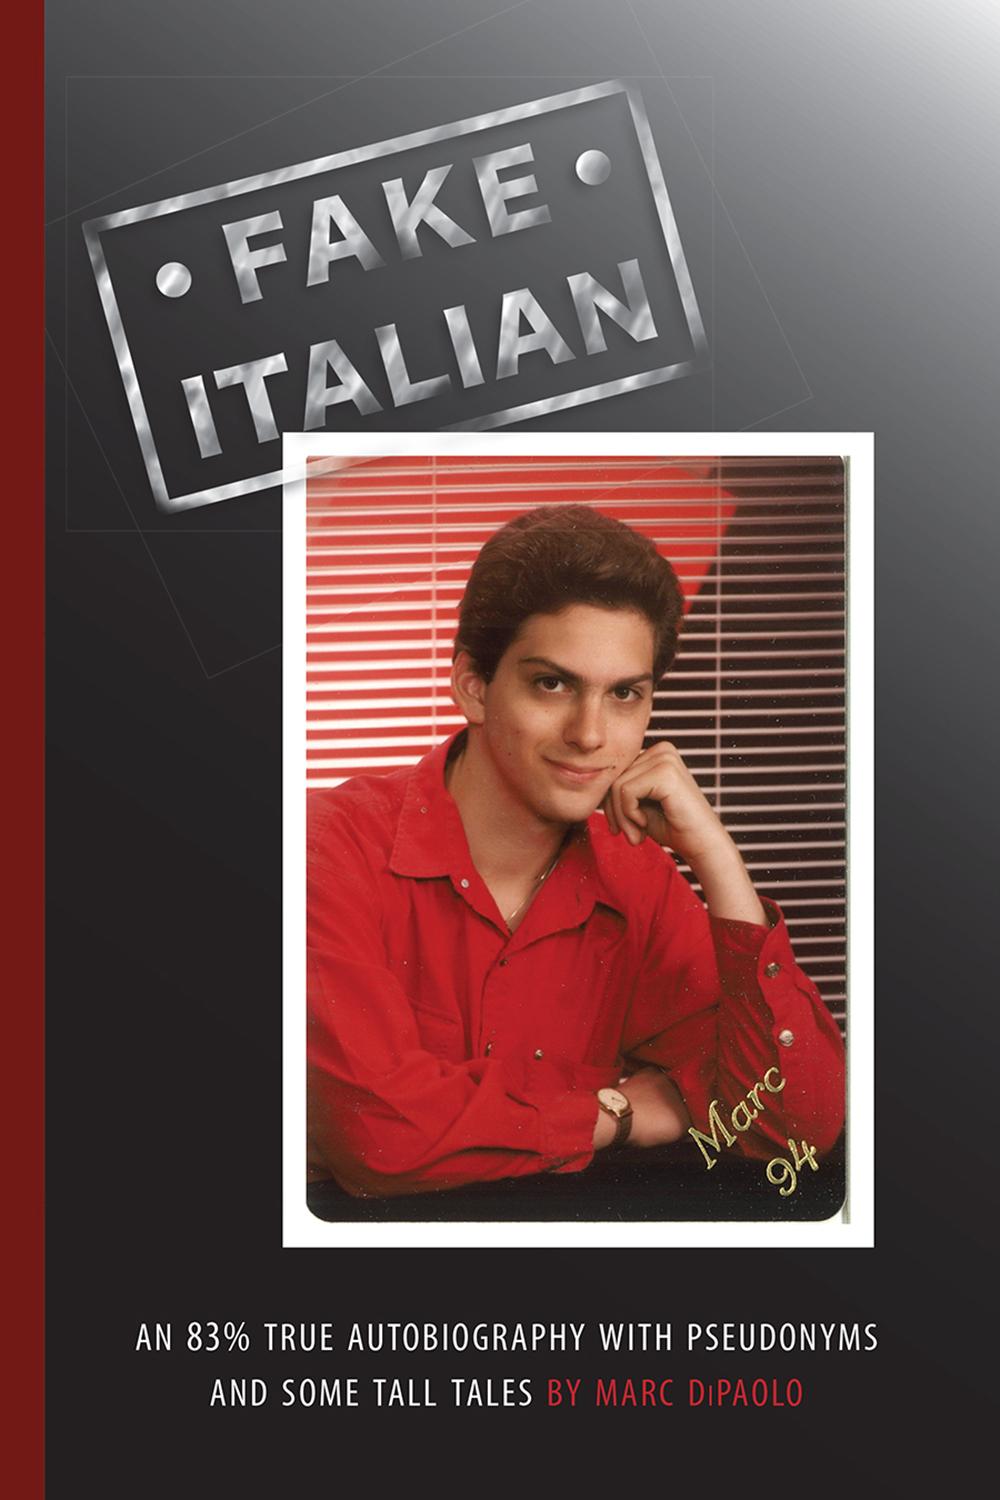 Fake Italian: An 83% True Autobiography with Pseudonyms and Some Tall Tales